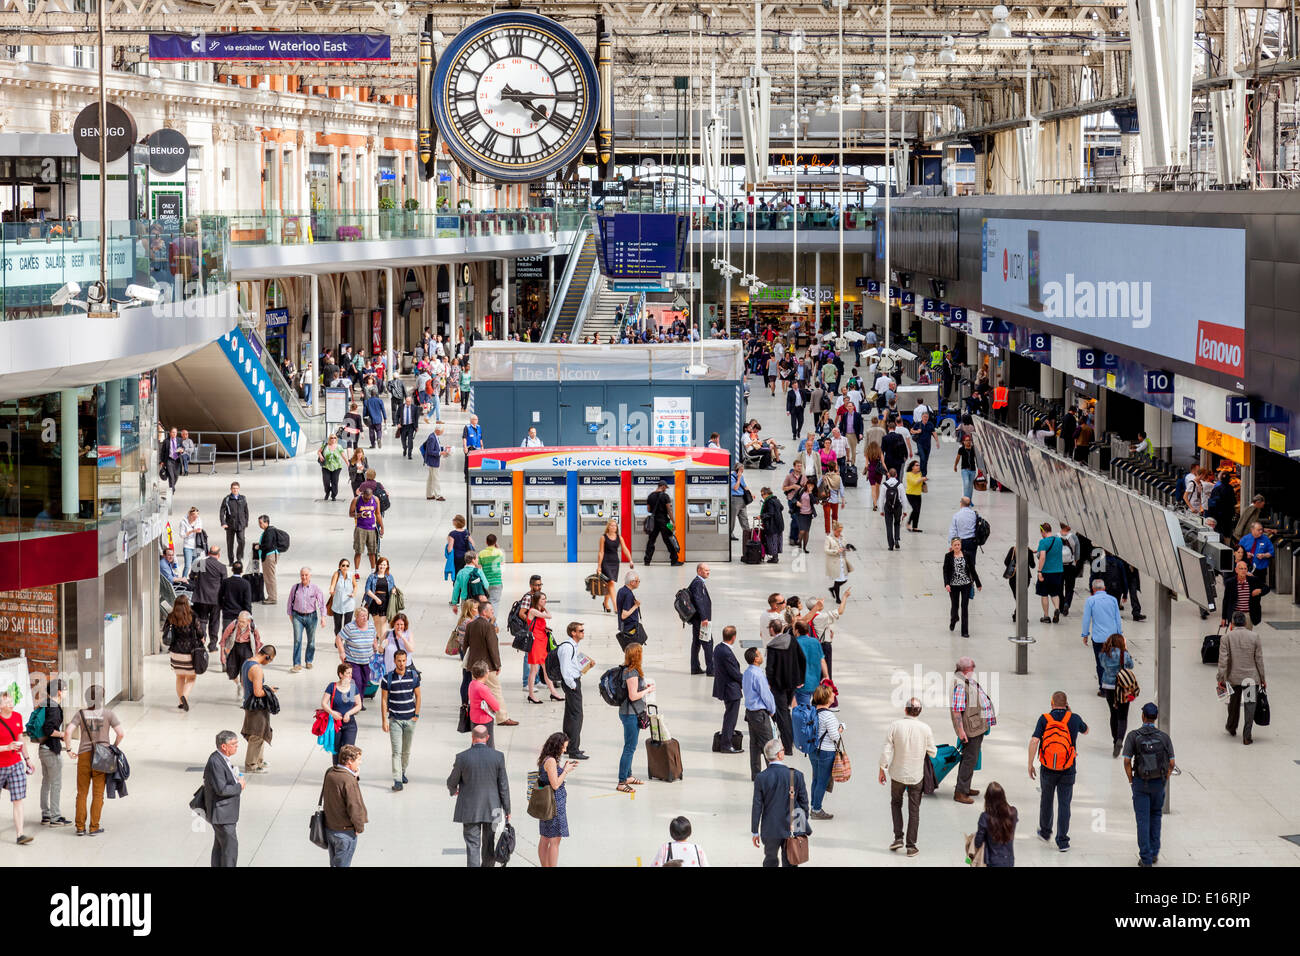 The Main Concourse At Waterloo Station, London, England - Stock Image